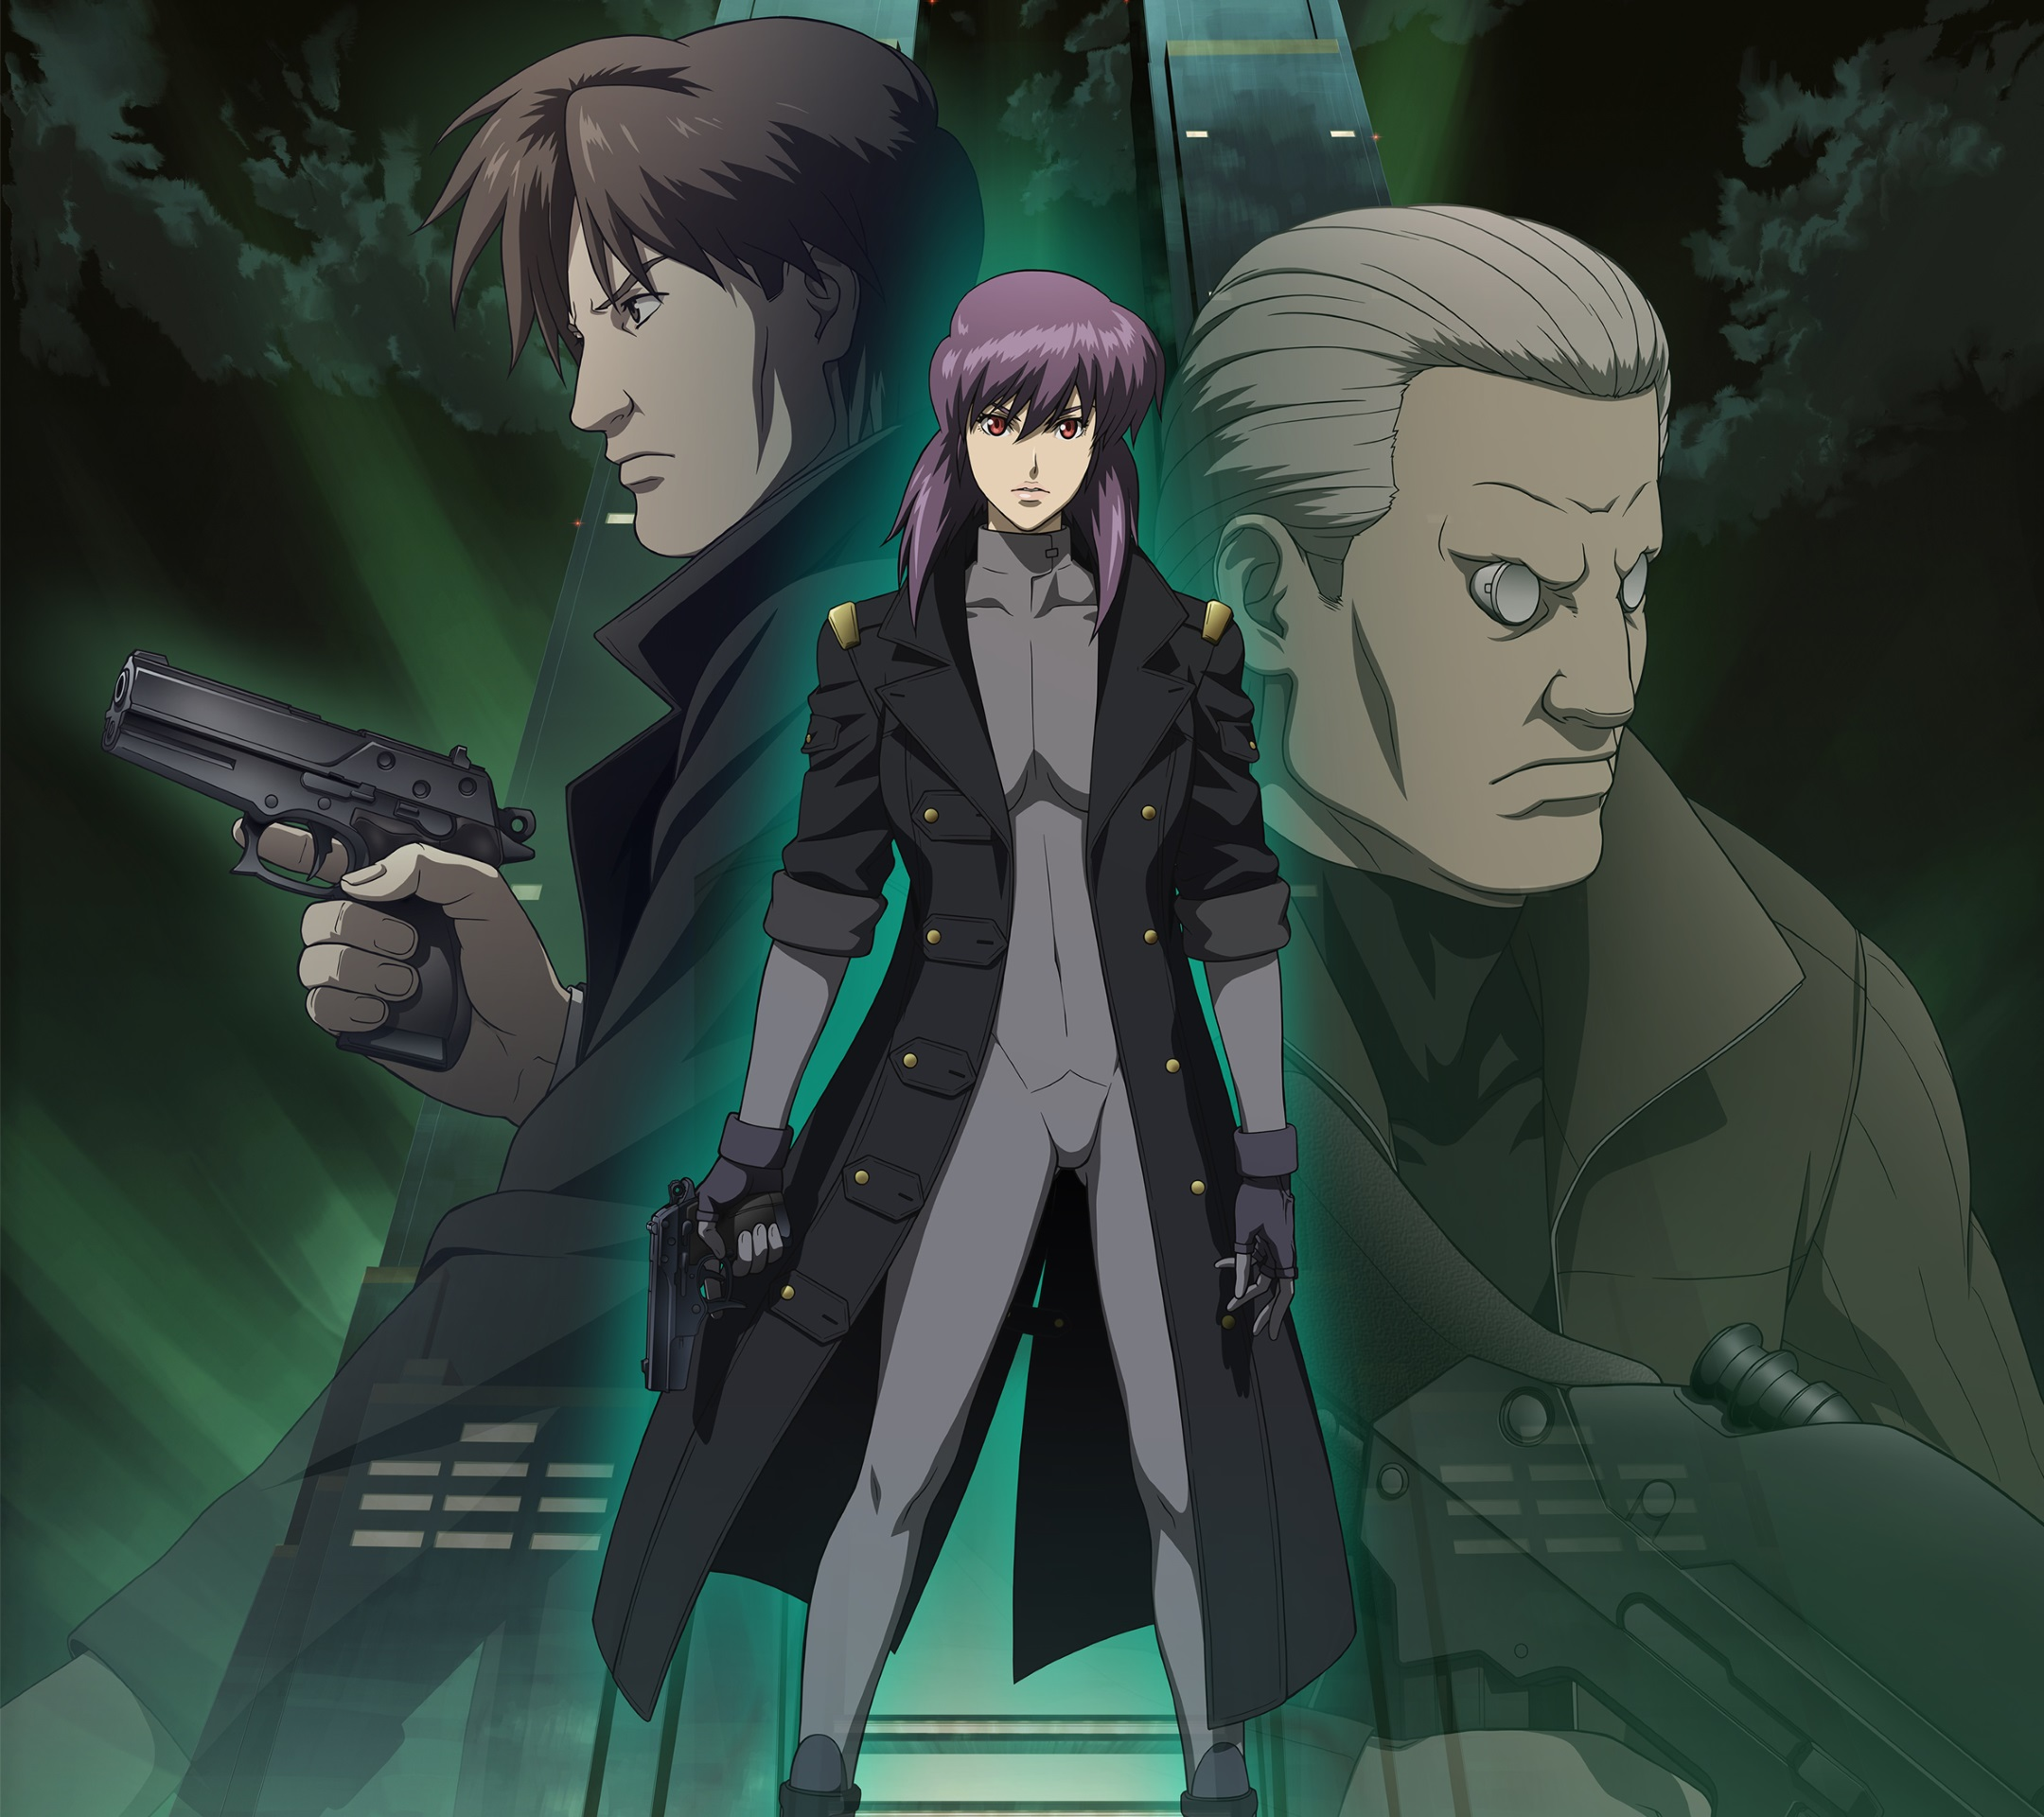 Hong Kong Wallpaper Iphone X Ghost In The Shell Wallpapers For Iphone And Android